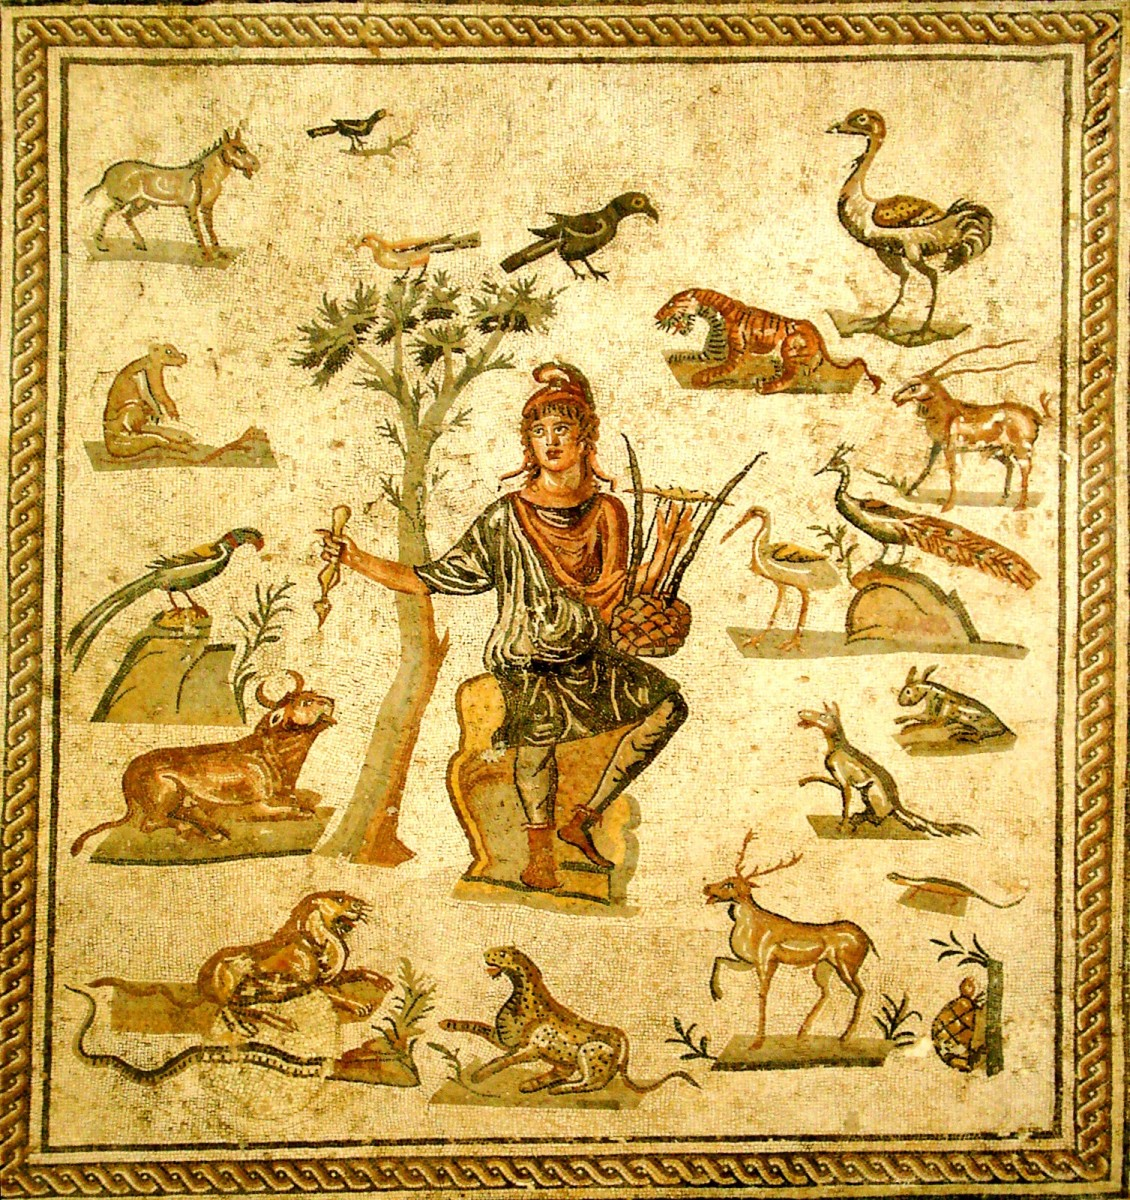 An Ancient Roman depiction of Orpheus and the animals that he has charmed